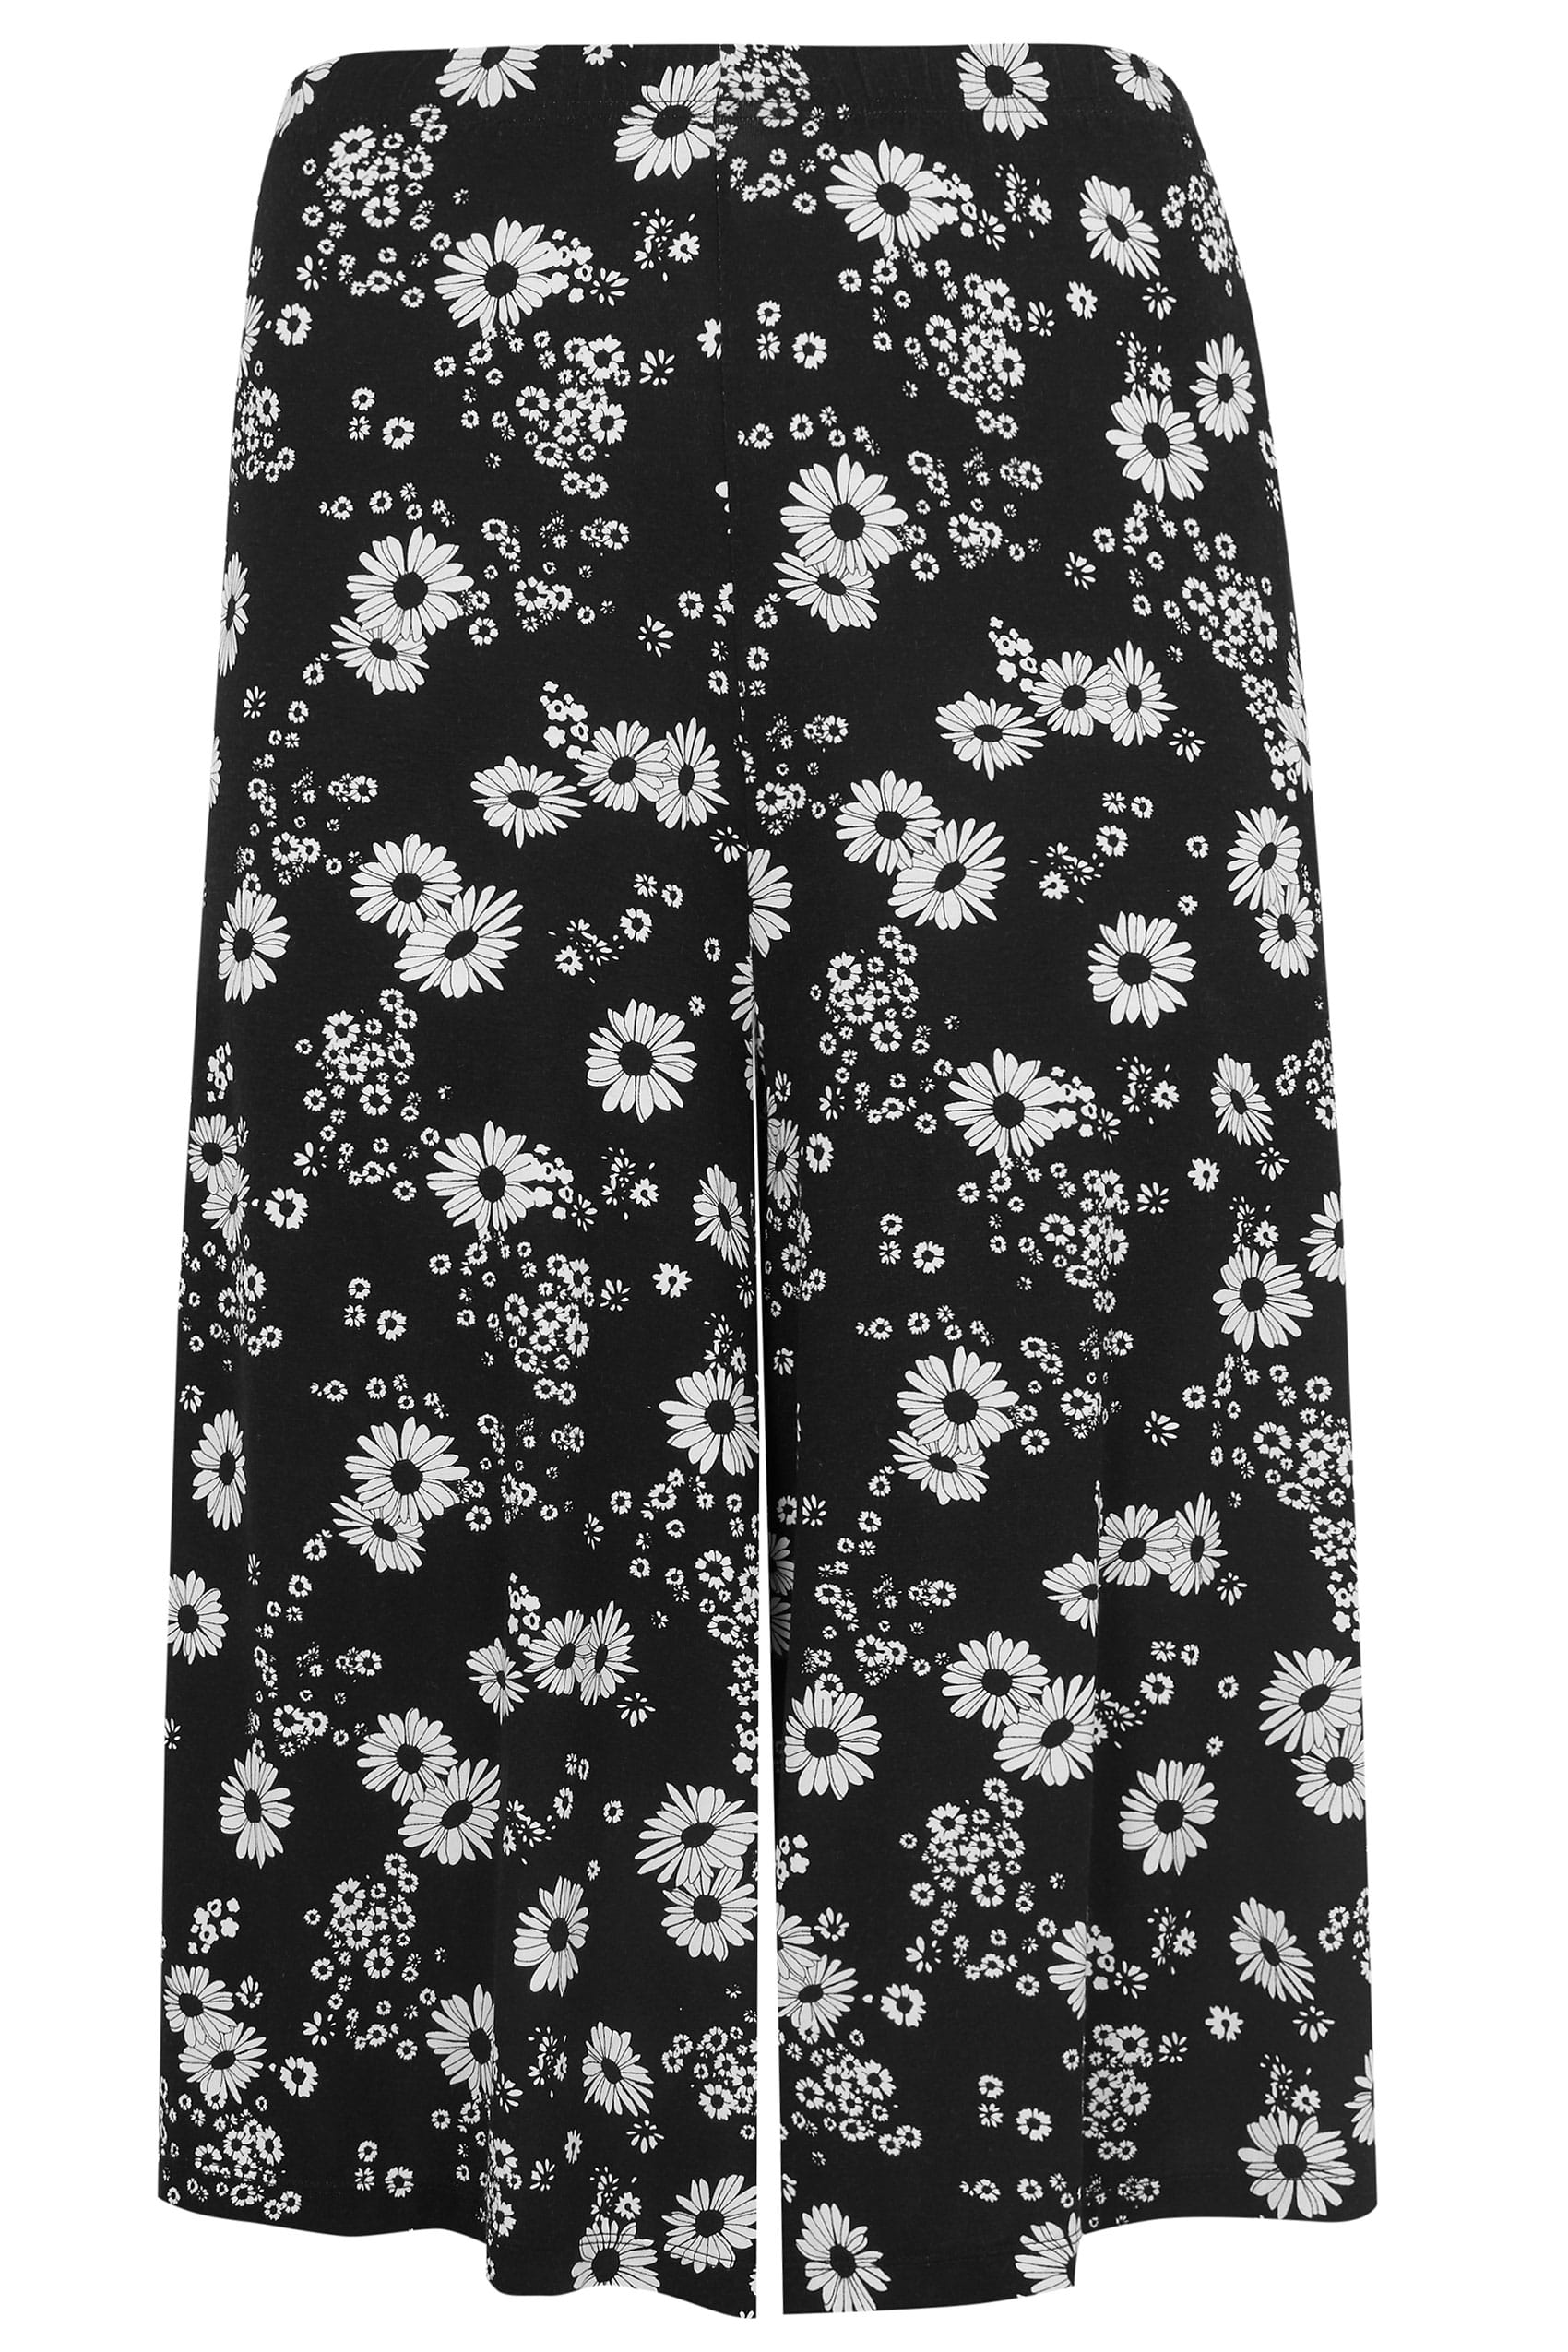 black white daisy print culottes plus size 16 to 36. Black Bedroom Furniture Sets. Home Design Ideas